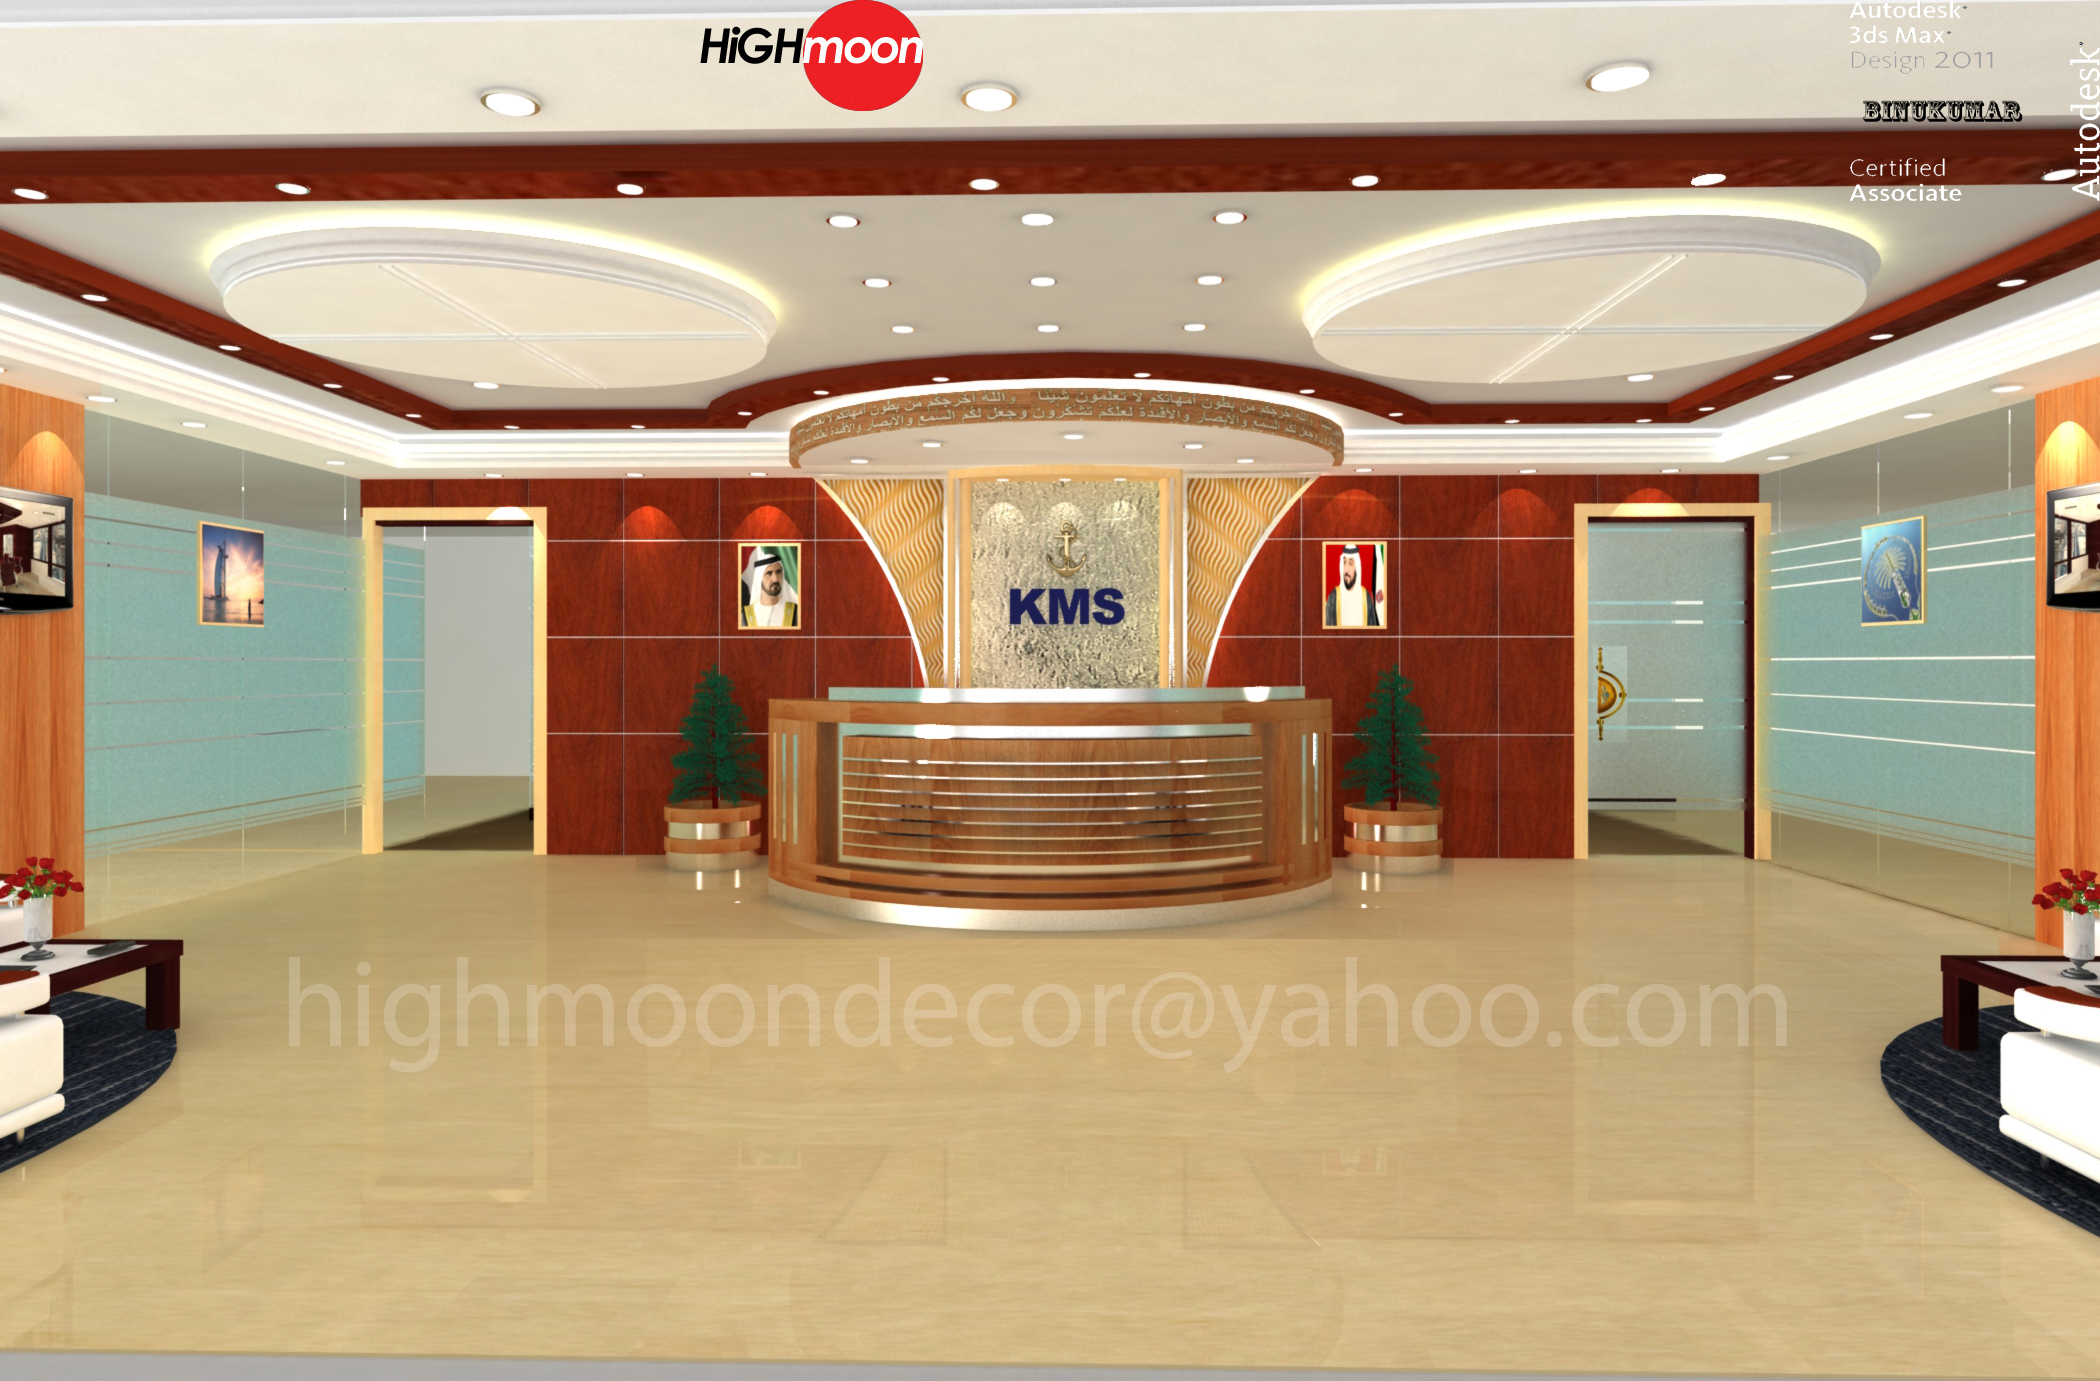 best interiors | All About Interiors